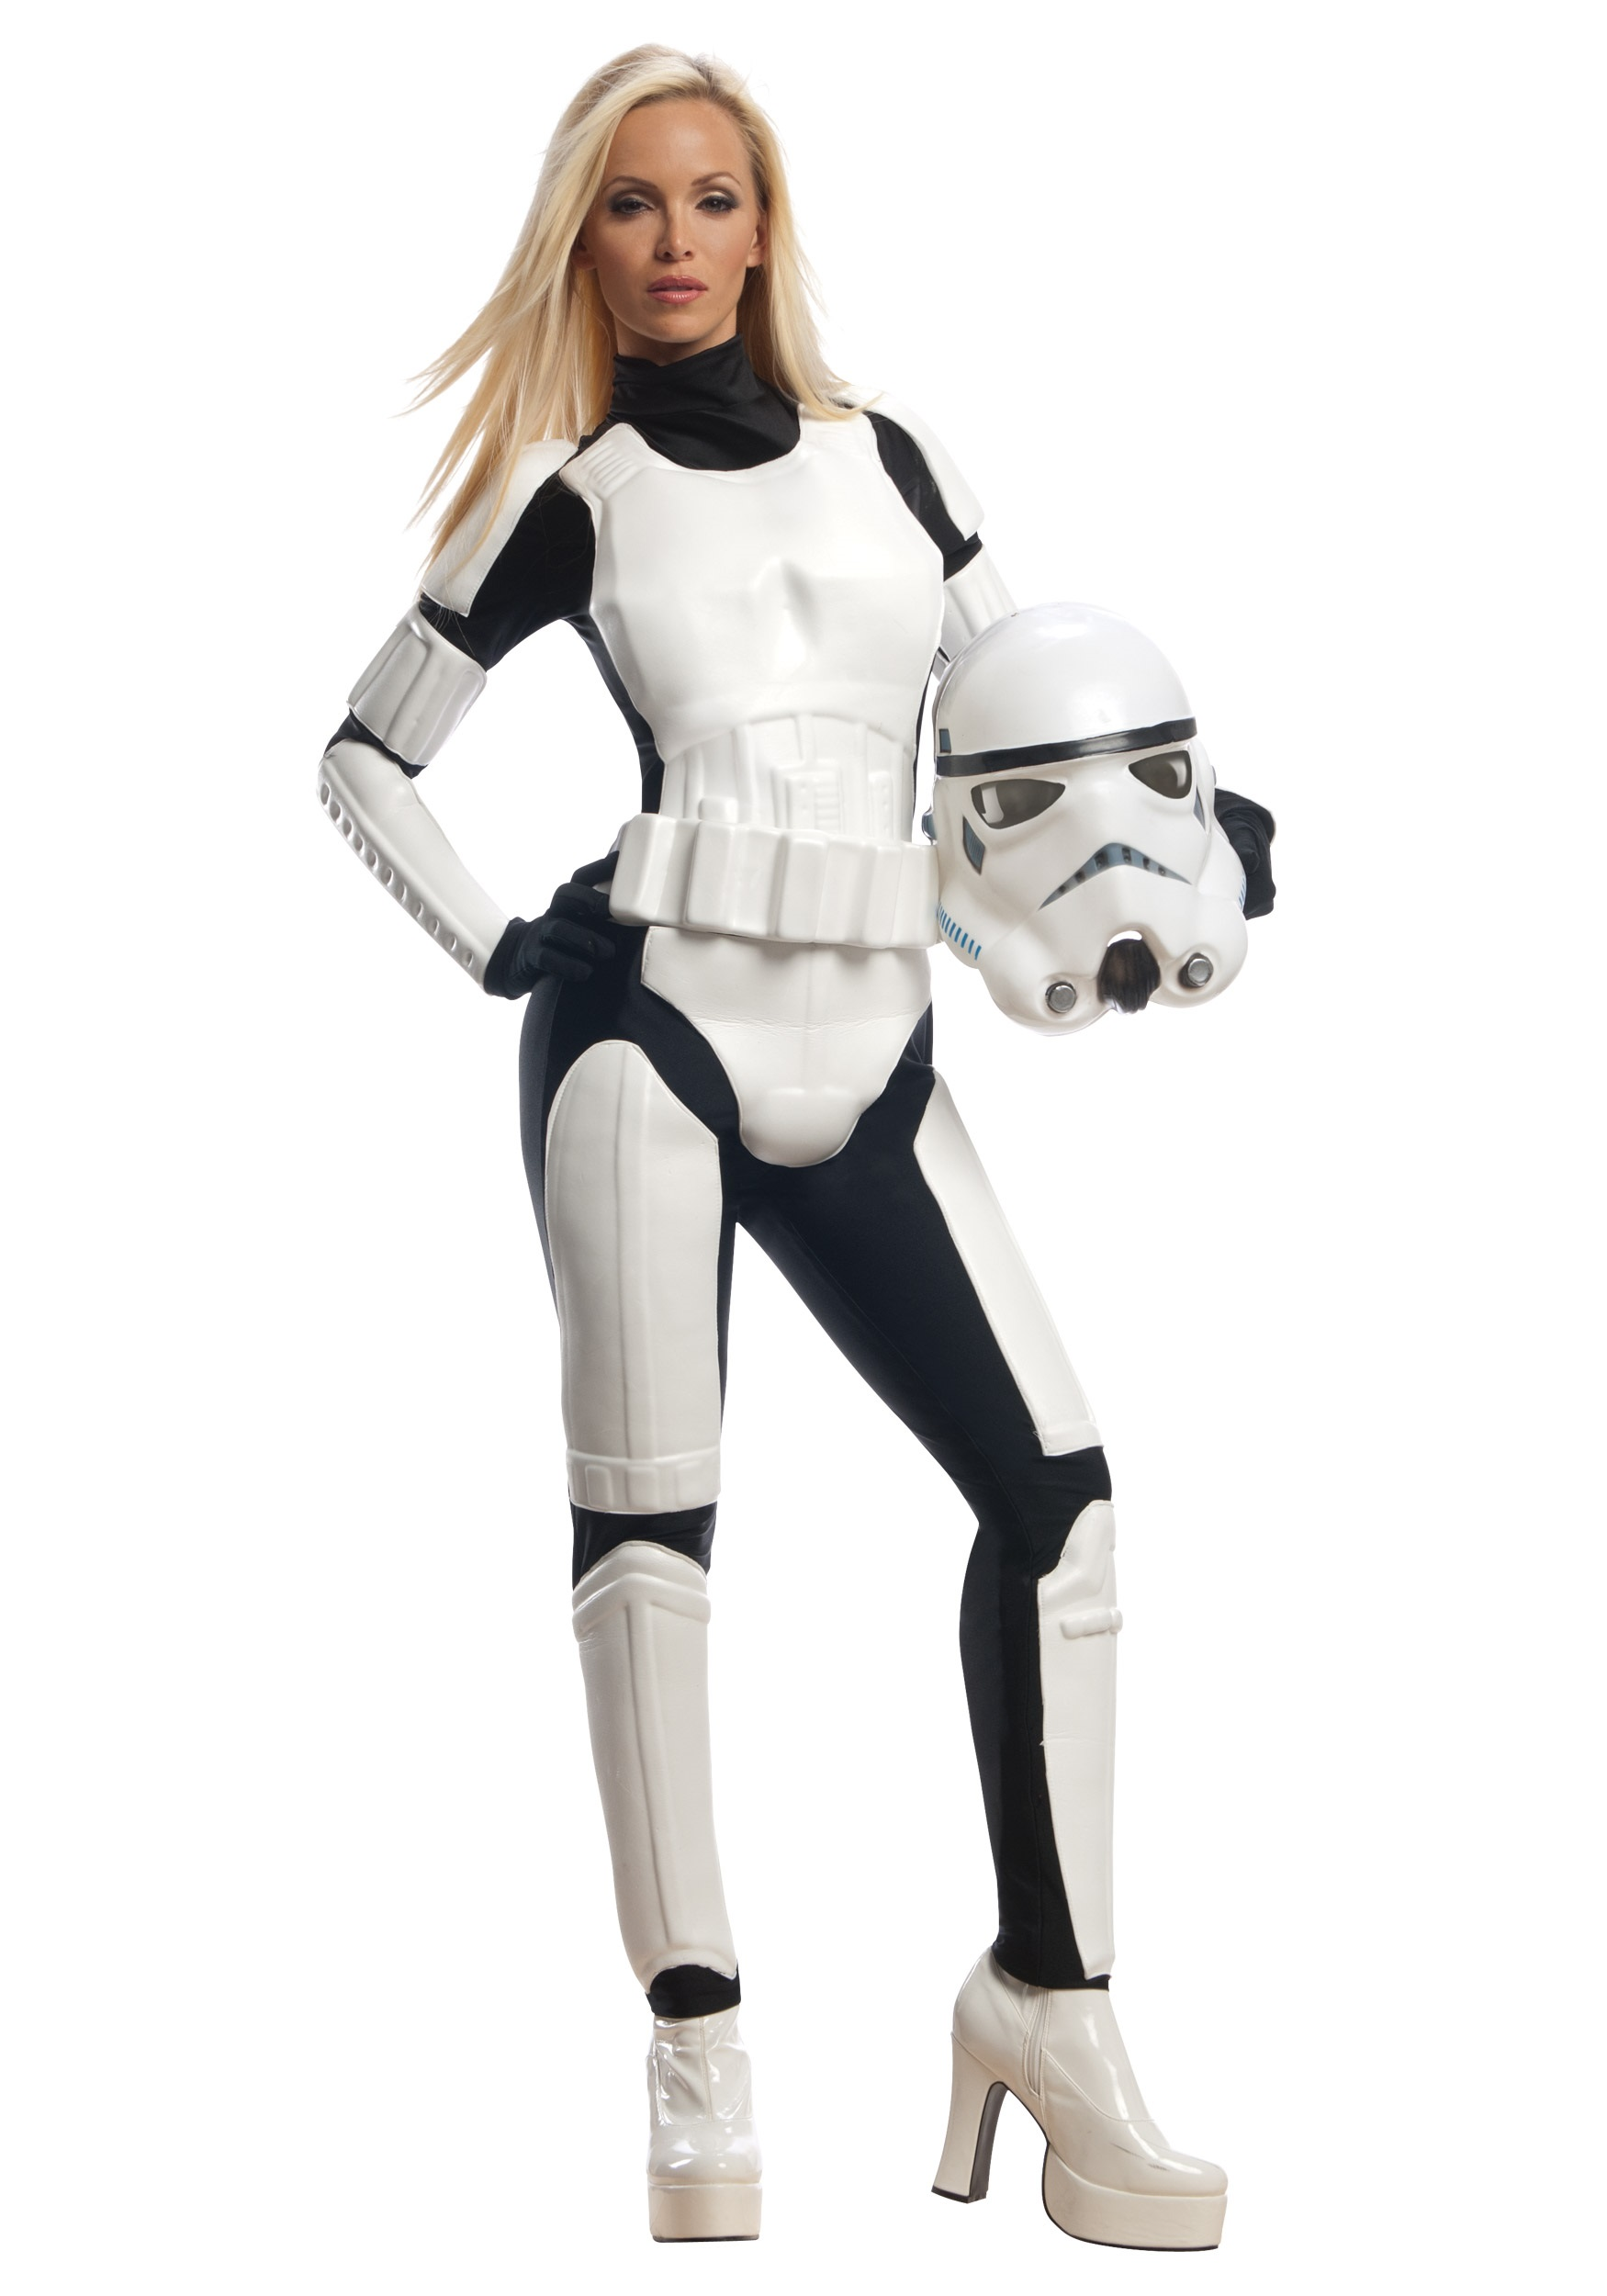 female-stormtrooper-halloween-costume-design-adults-men-girls-homemade-kids